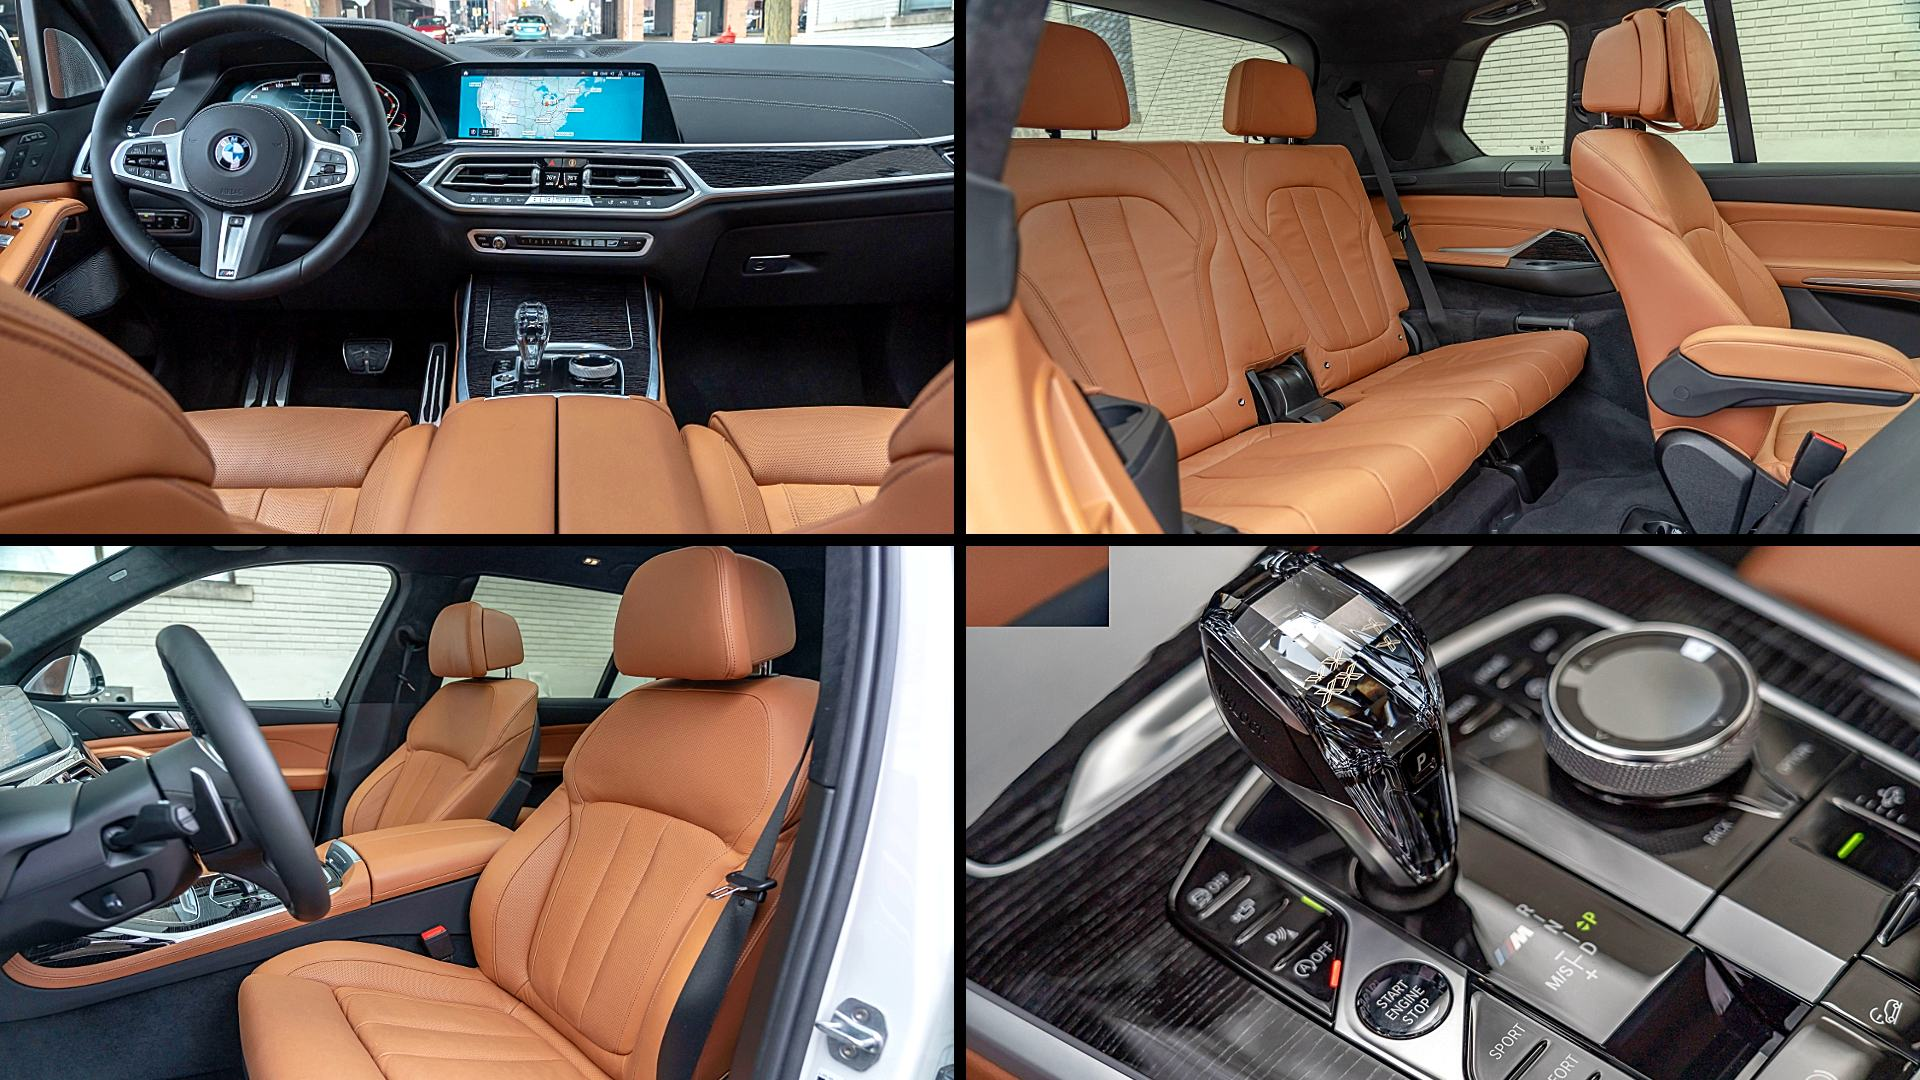 2020 BMW X7 SUV Interior Inside Photos